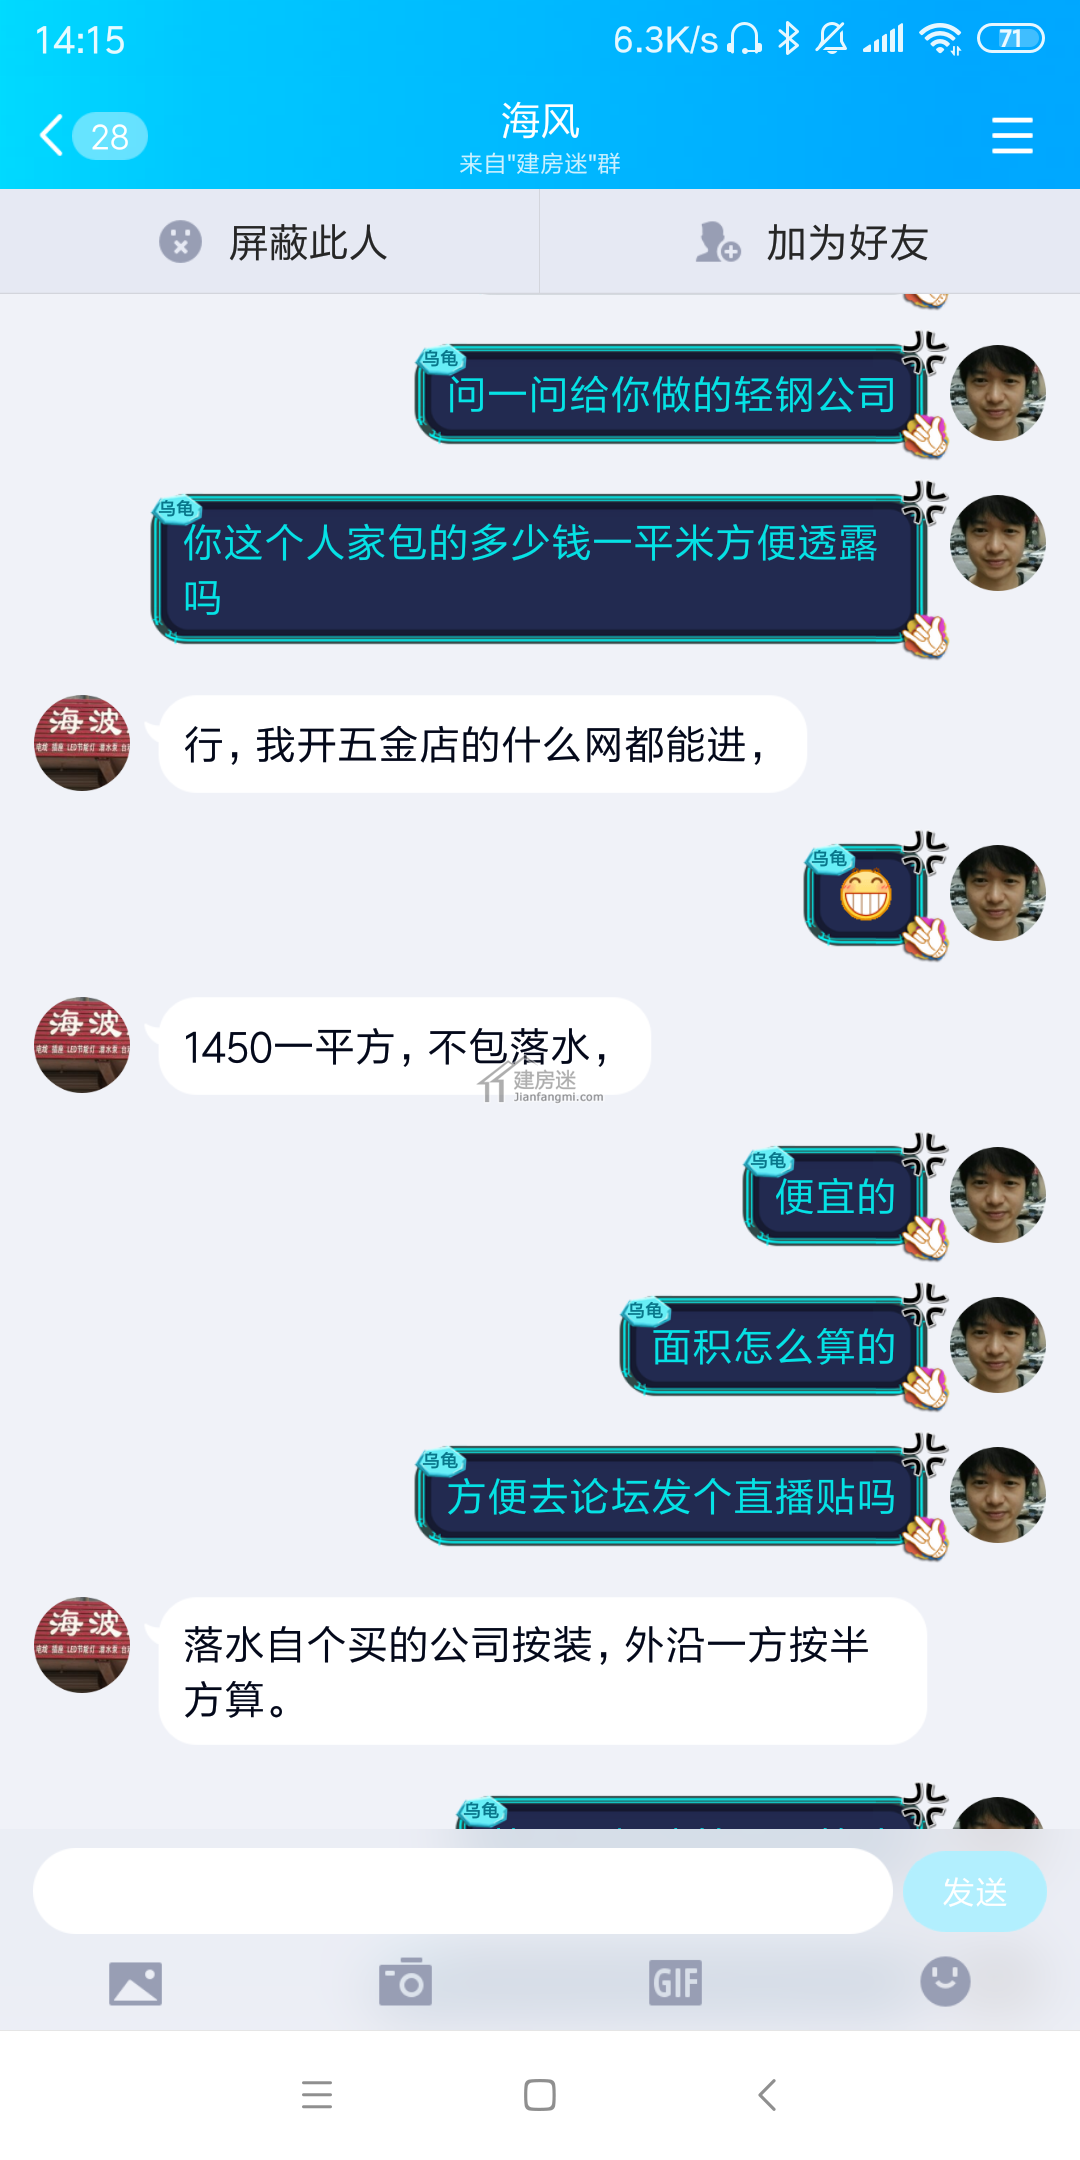 Screenshot_2019-06-05-14-15-38-546_com.tencent.mo.png